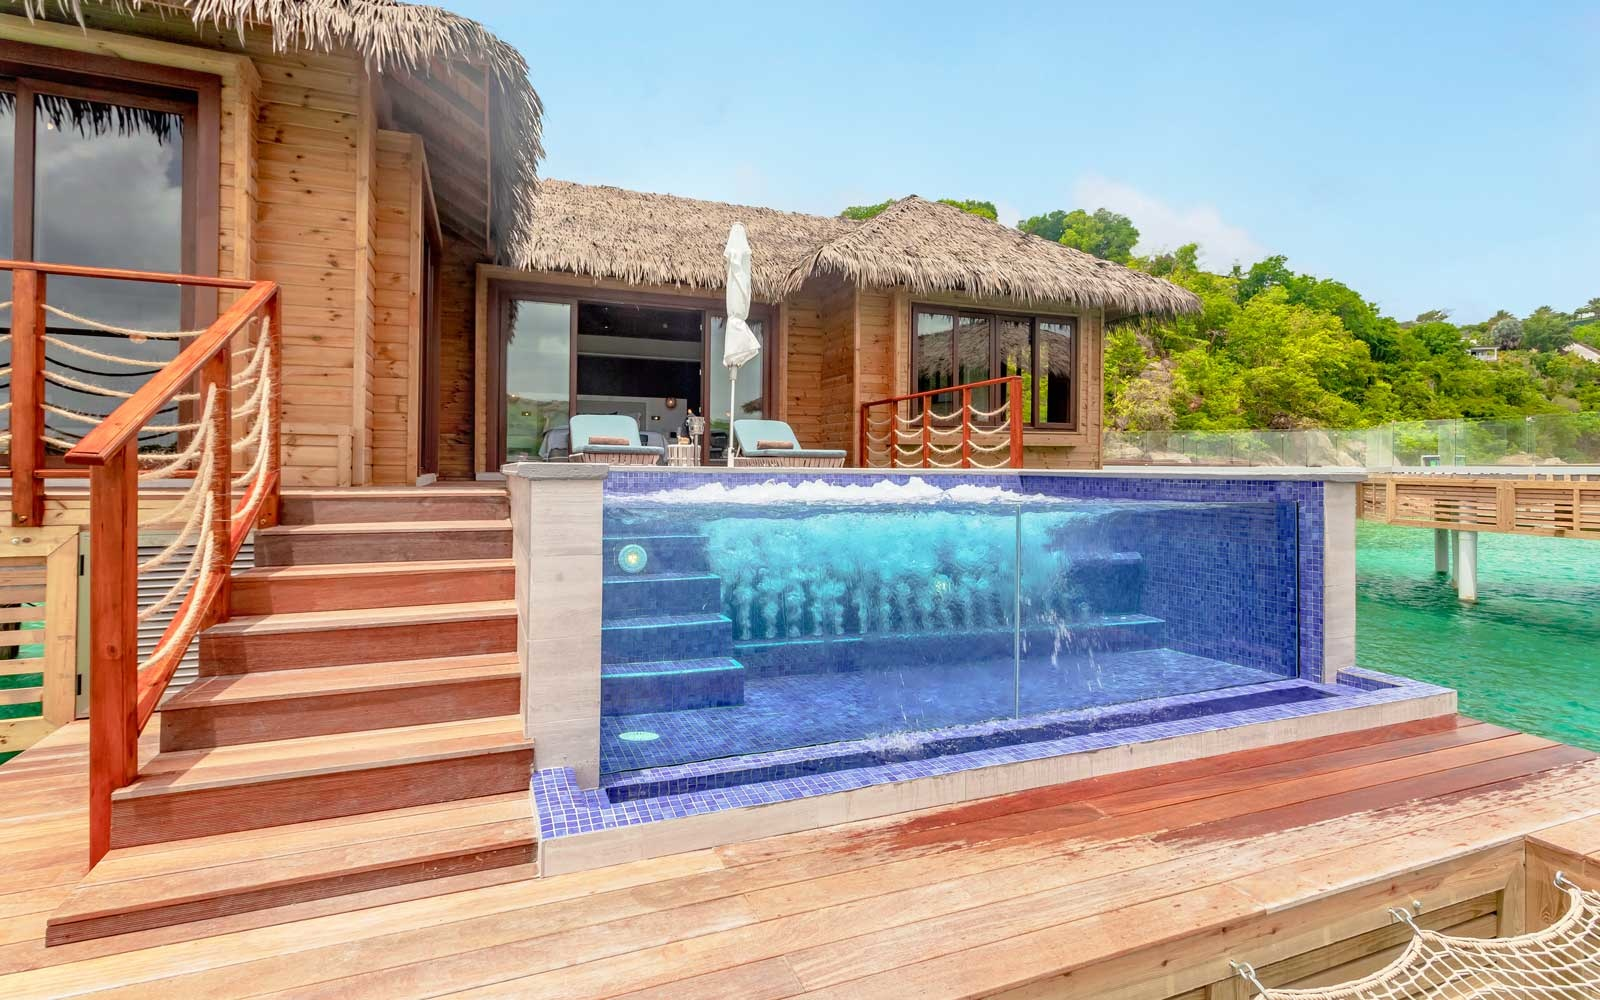 Overwater Bungalow at Royalton Antigua